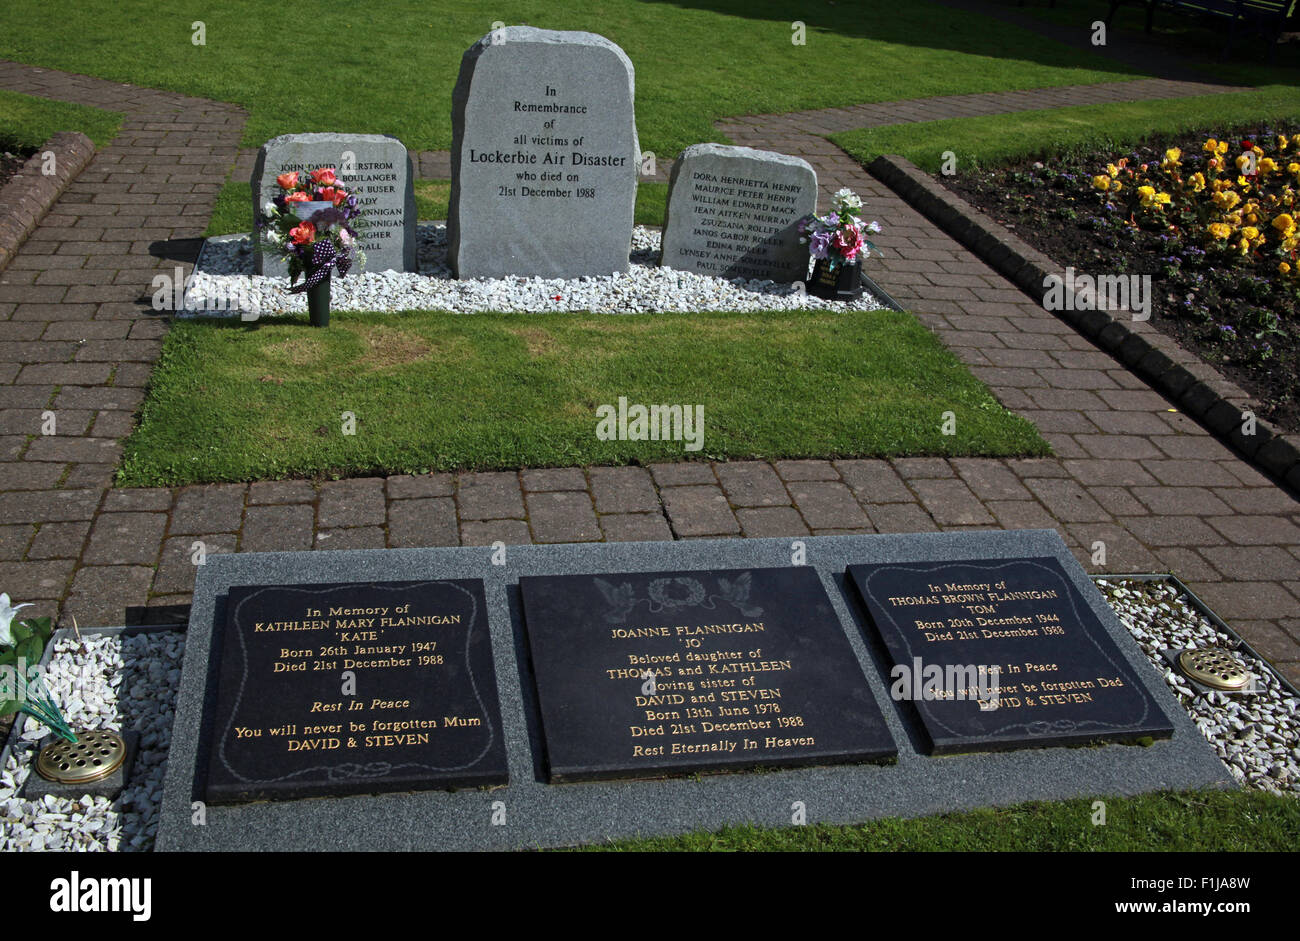 Flannigan,Scotland,Lodge,Visitors,Centre,DLVC,Trust,Lockerbie,Memorial,Remembrance,Scotland,Victims,Pan,Am,PanAm,flight,103,bomb,bombing,terrorist,December,1988,attack,crash,dead,site,21/12/1988,270,victims,Scottish,Town,conspiracy,blast,Tundergarth,Room,garden,of,Dryfesdale,Cemetery,new,New York,GoTonySmith,Lodge,Visitors,Centre,DLVC,Trust,Lockerbie,Memorial,Scotland,Victims,Pan,Am,PanAm,flight,103,bomb,bombing,terrorist,December,1988,attack,crash,dead,site,21/12/1988,270,victims,Scottish,Town,conspiracy,blast,Tundergarth,Room,garden,of,Dryfesdale,Cemetery,news,Cultural,understanding,remembering,innocent,transatlantic,Frankfurt,Detroit,Libyan,Libya,Colonel Muammar Gaddafi,civil,case,compensation,terrorism,PA103,30,30years,years,Syracuse,University,SU,family,collections,Story,Archive,Archives,40,35,Timeline,saga,disaster,air,Scholars,program,programs,remembrance,Clipper Maid of the Seas,N739PA,Boeing,727,plane,aircraft,Scotland,UK,United Kingdom,GB,Great Britain,resting,place,Buy Pictures of,Buy Images Of,New York,al megrahi,30 Years